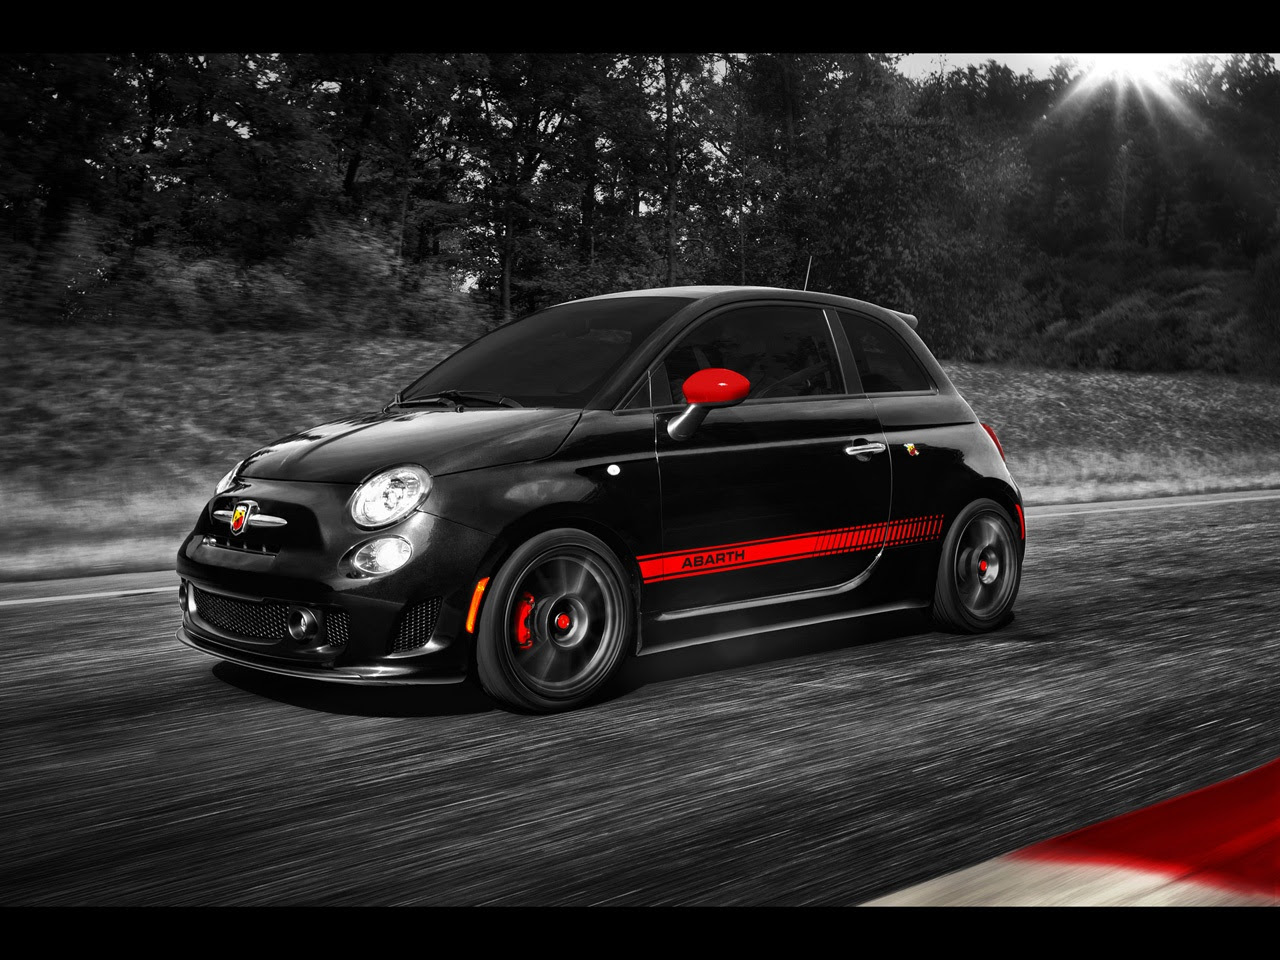 Abarth Wallpapers by Carswallpapers.net